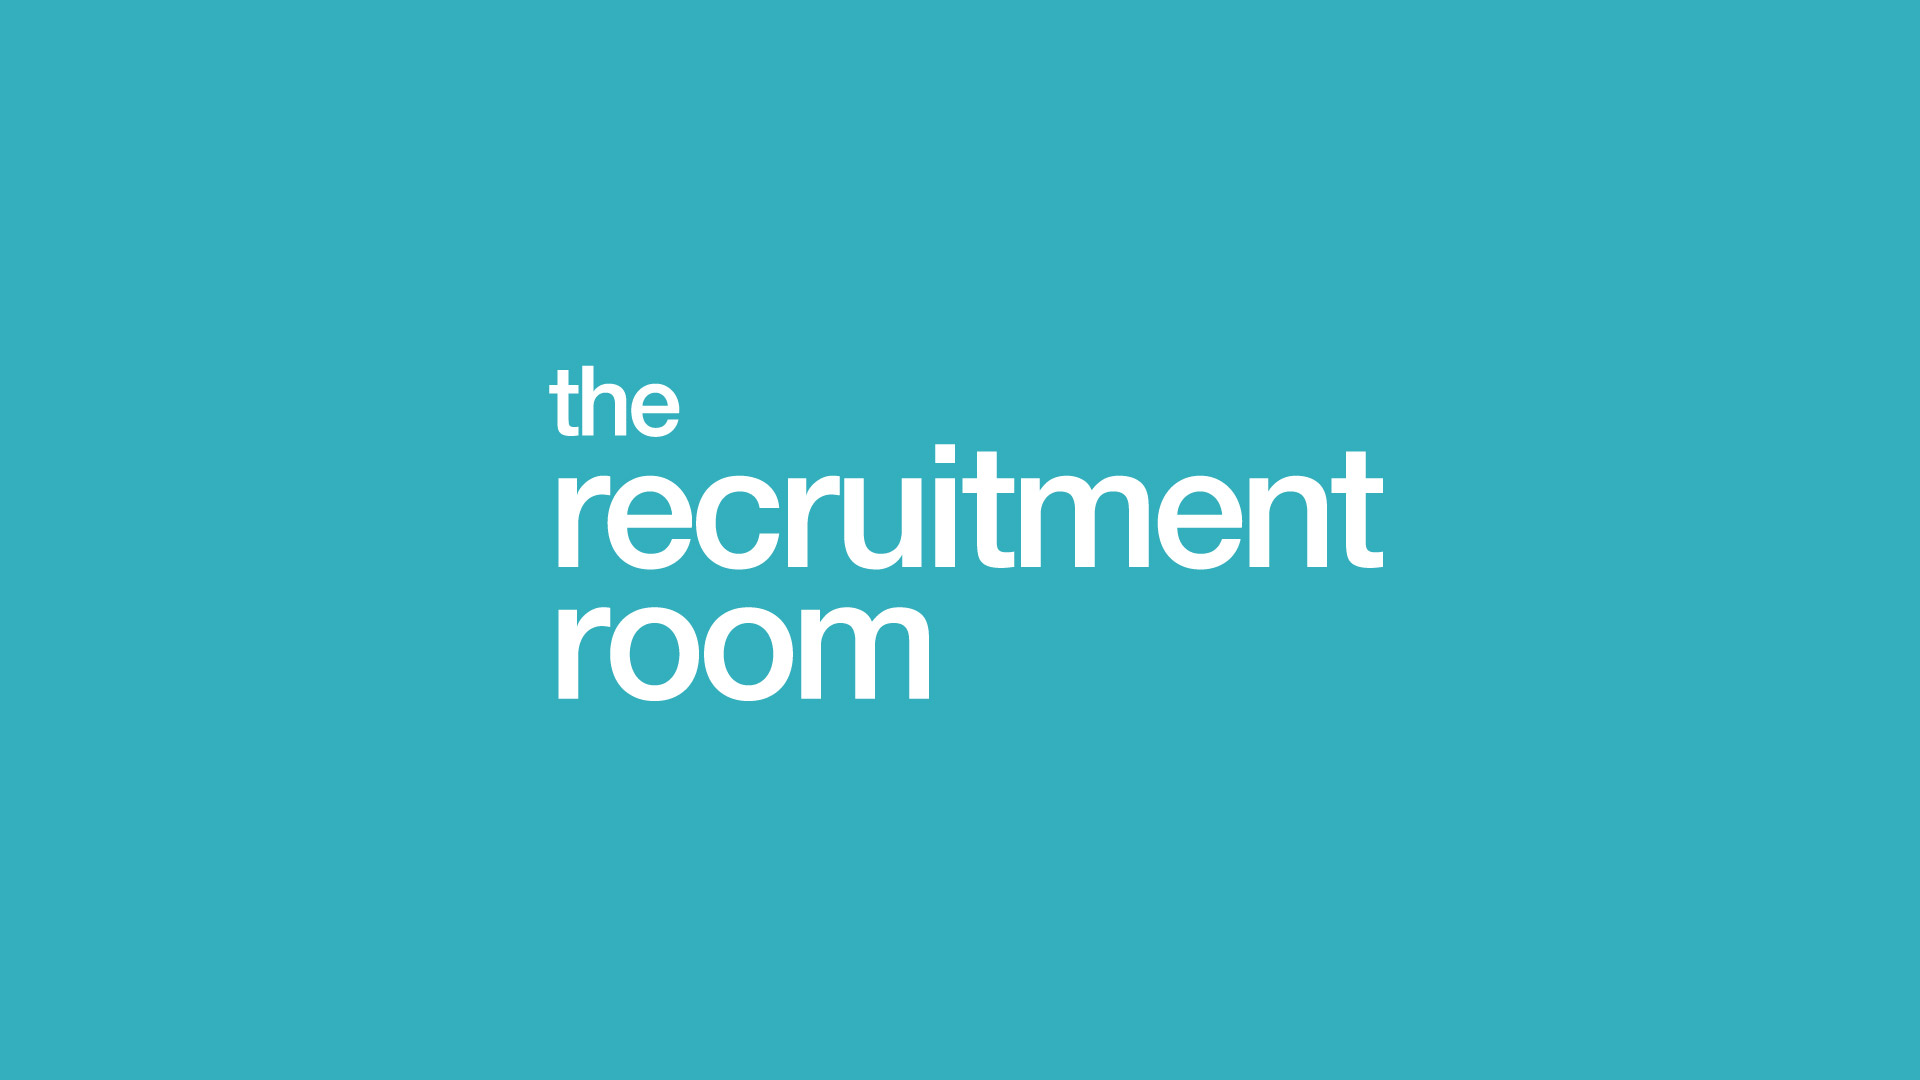 the-recruitment-room-logo